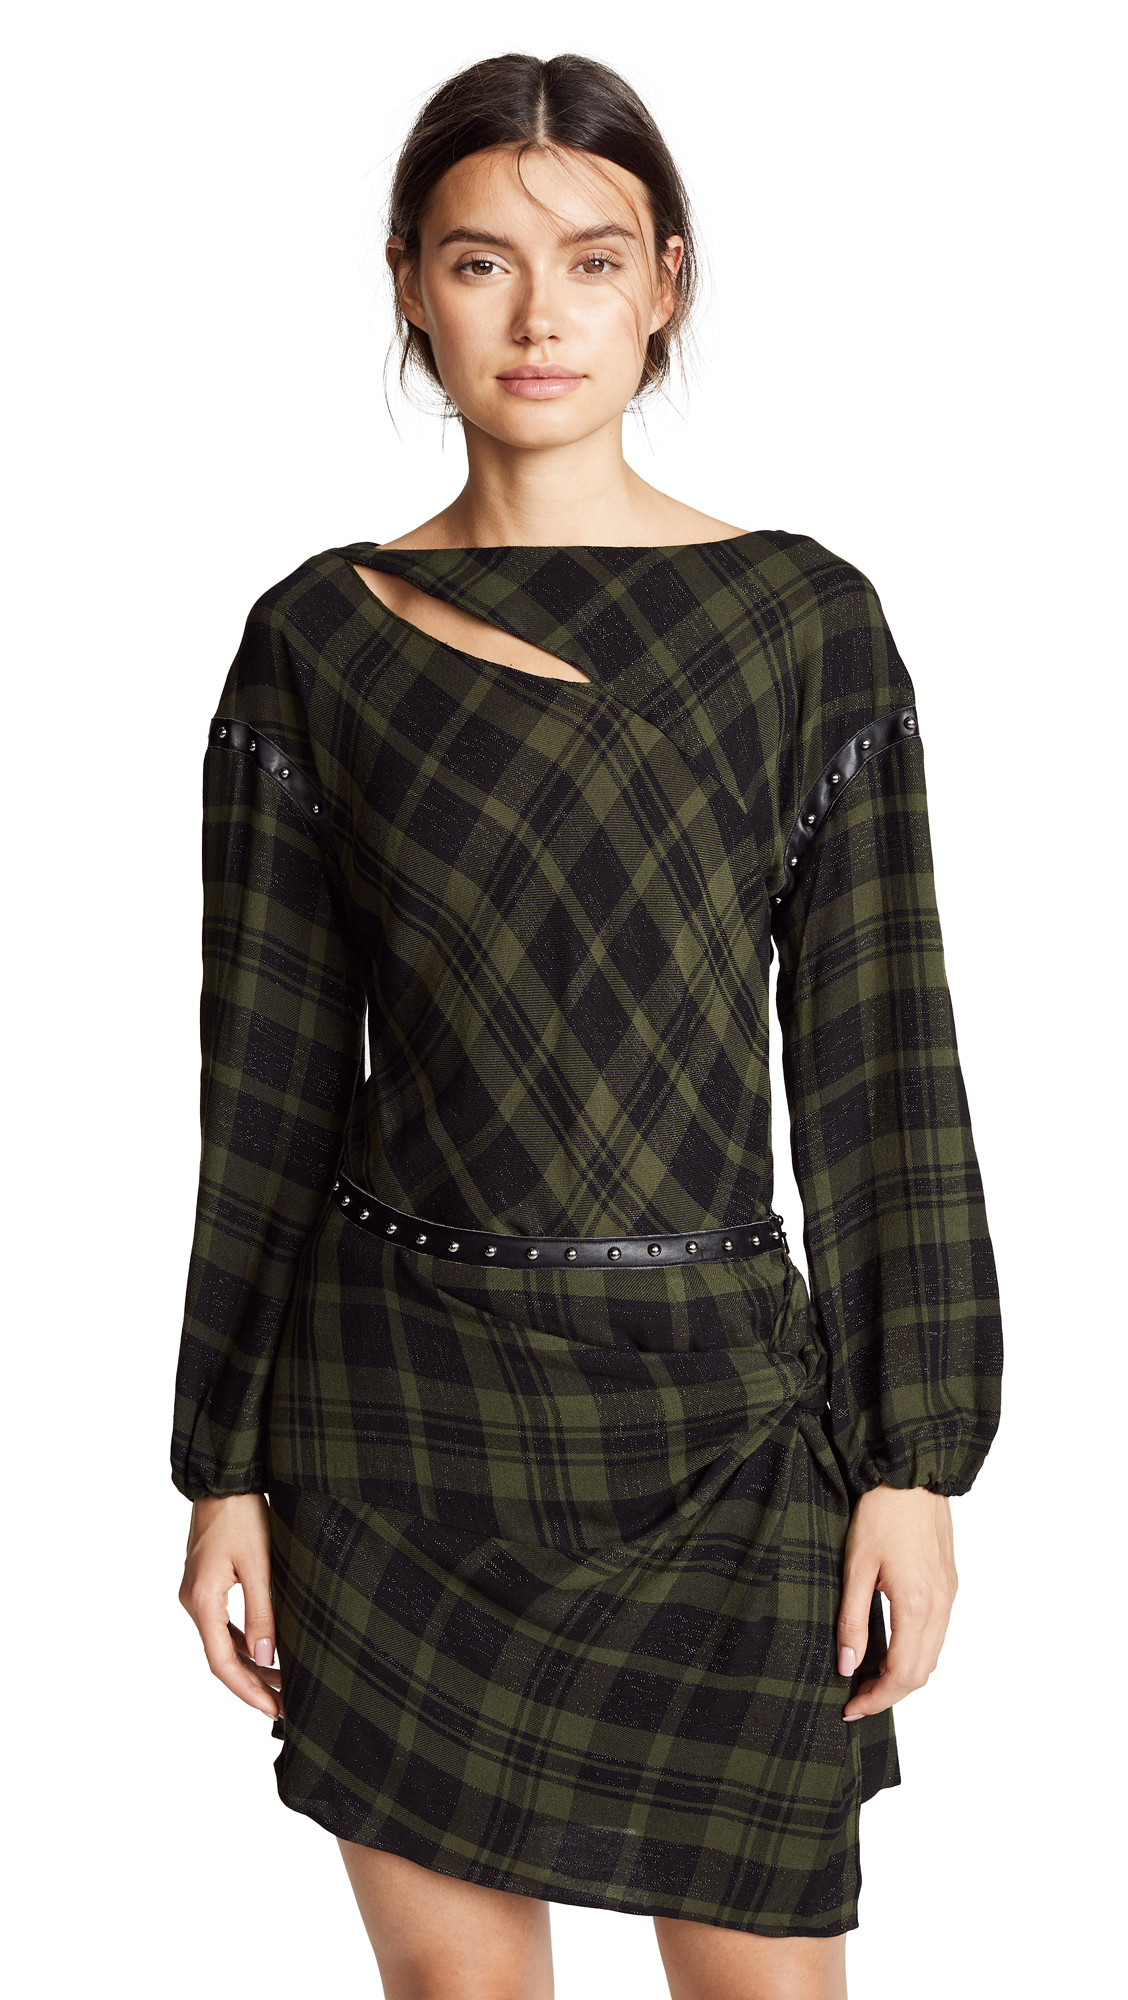 Ramy Brook Sloan Top In Urban Green